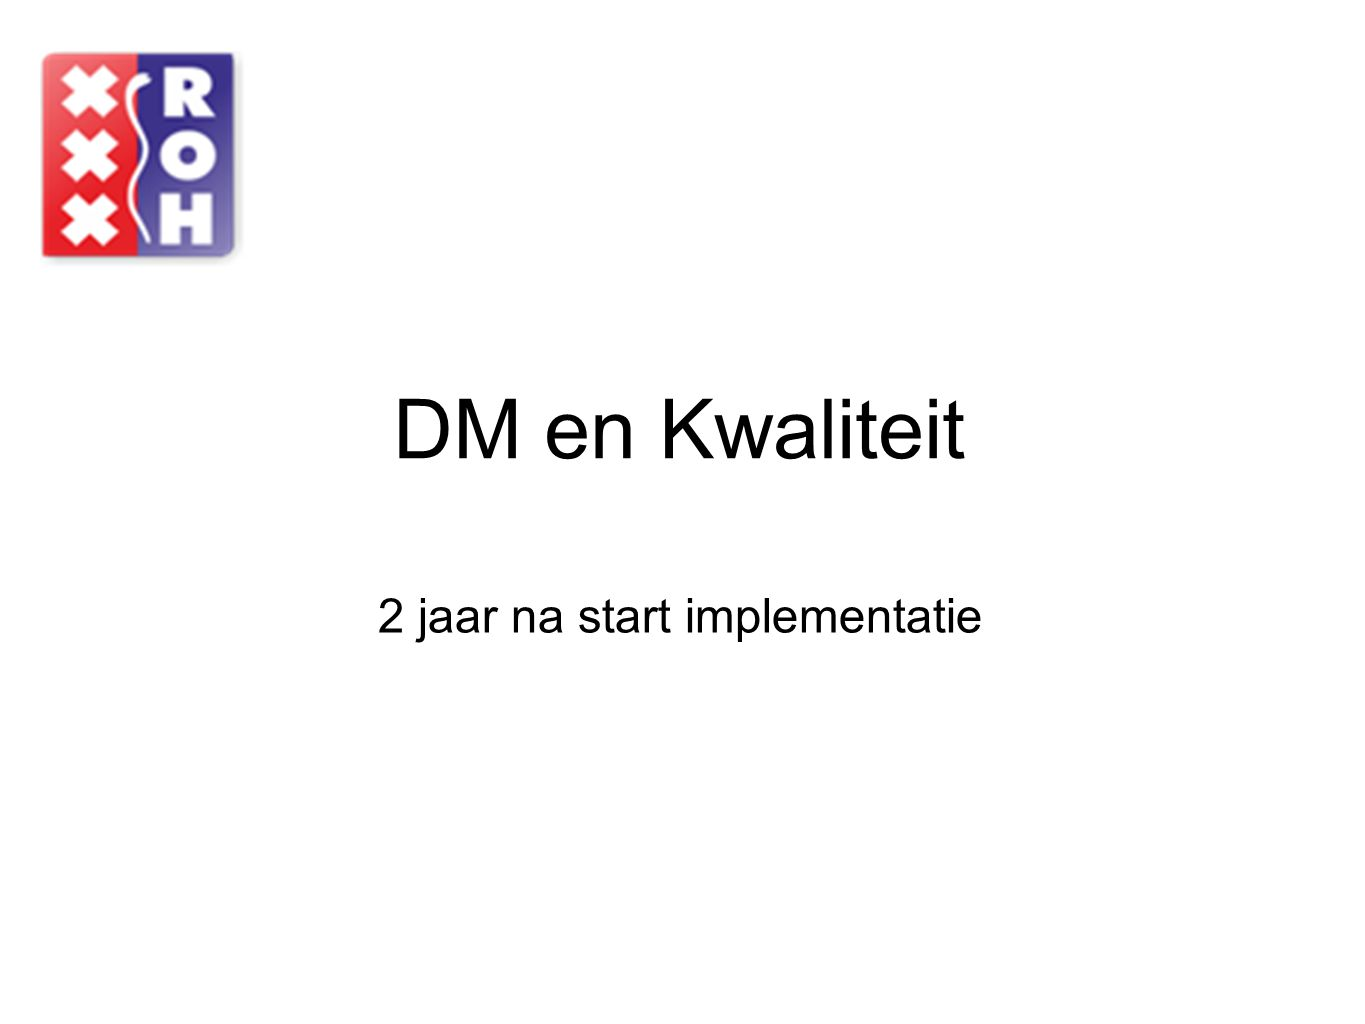 2 jaar na start implementatie